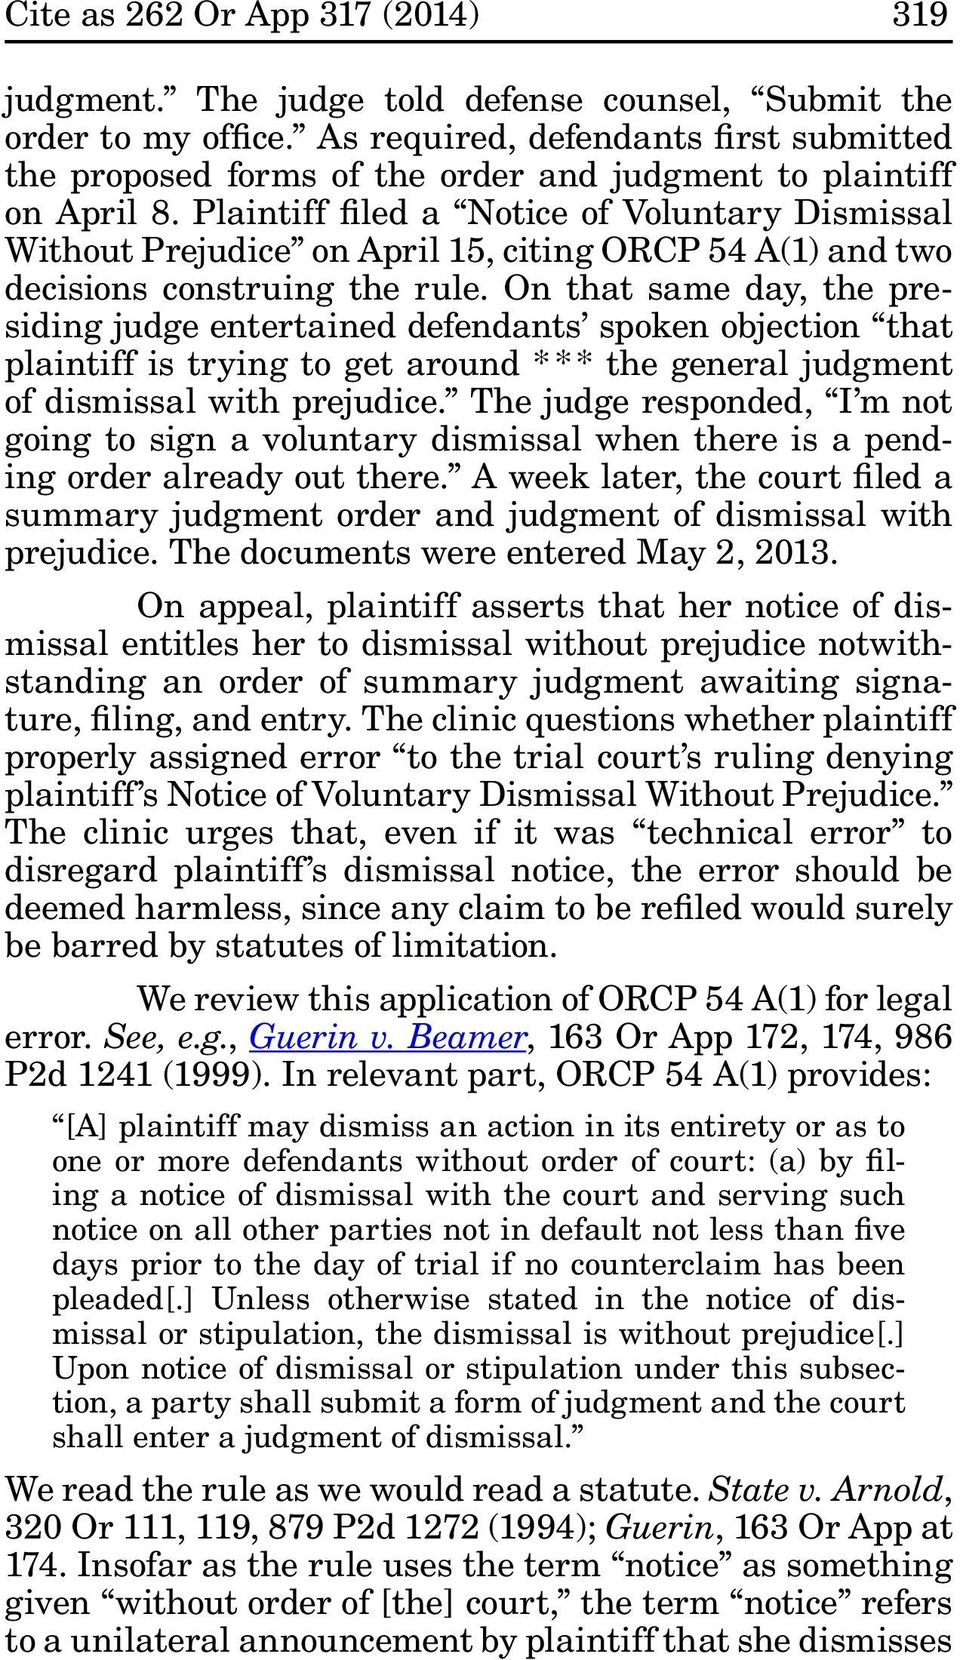 Plaintiff filed a Notice of Voluntary Dismissal Without Prejudice on April 15, citing ORCP 54 A(1) and two decisions construing the rule.